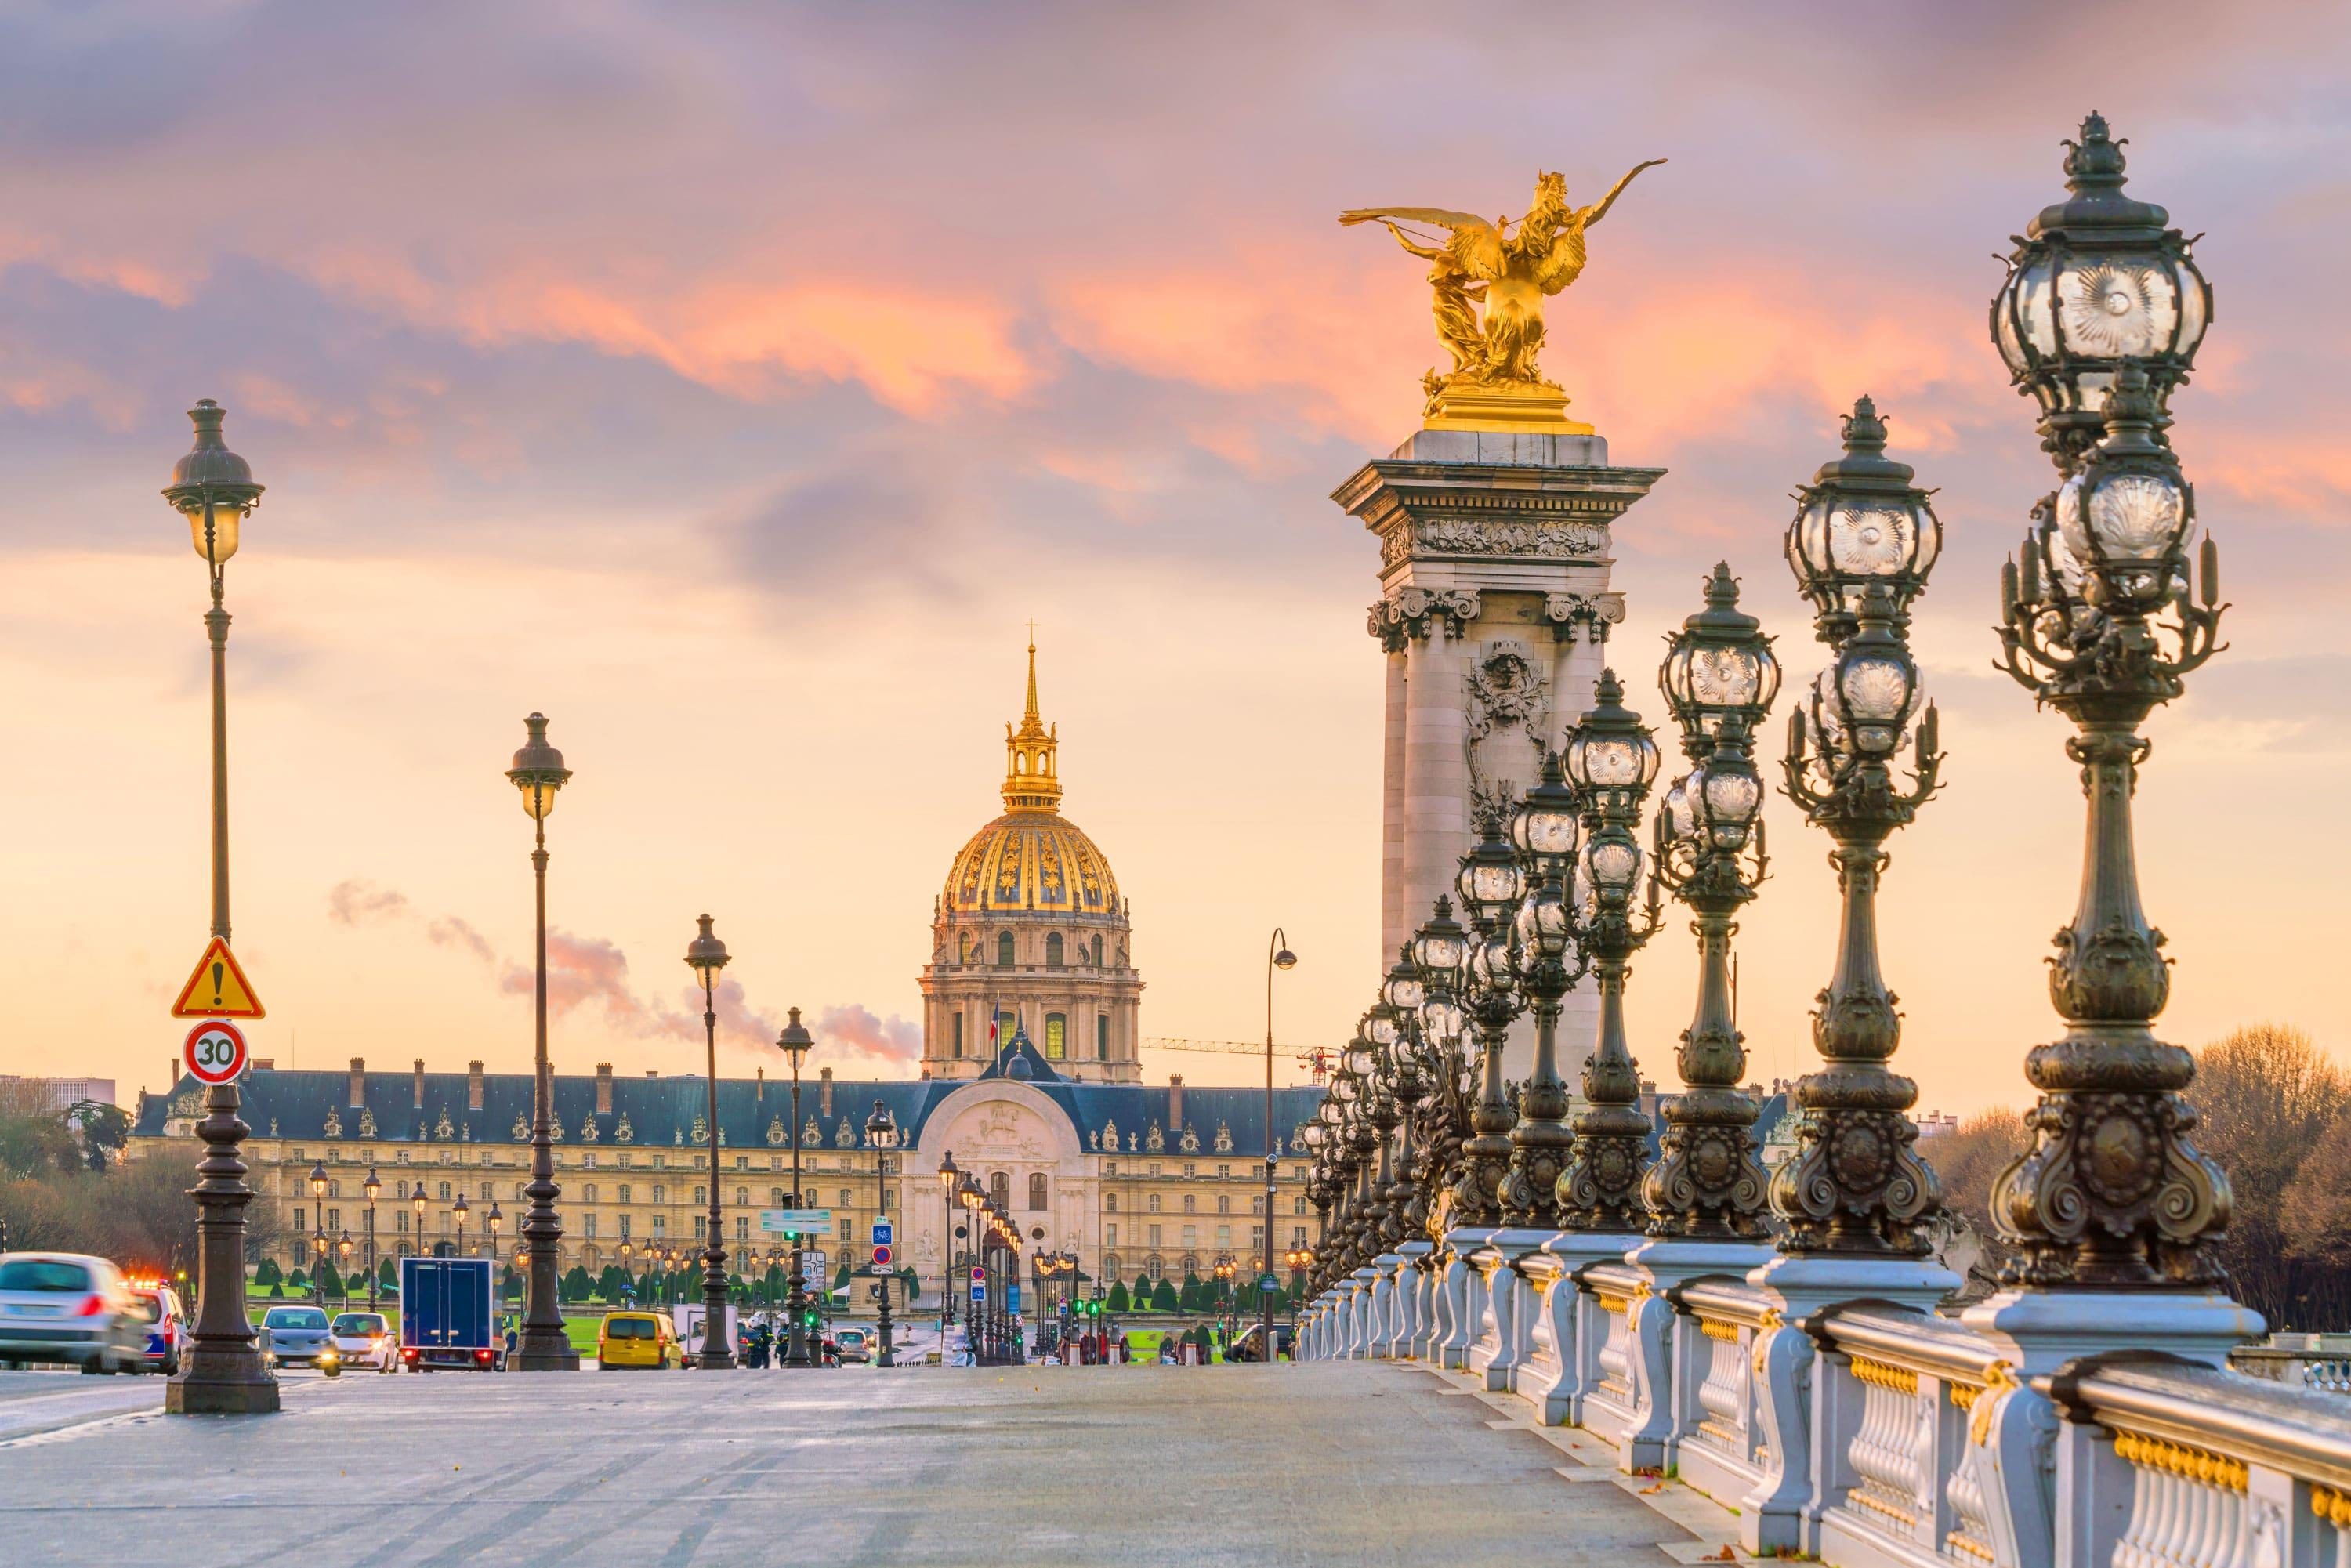 Alexander III Bridge, Paris